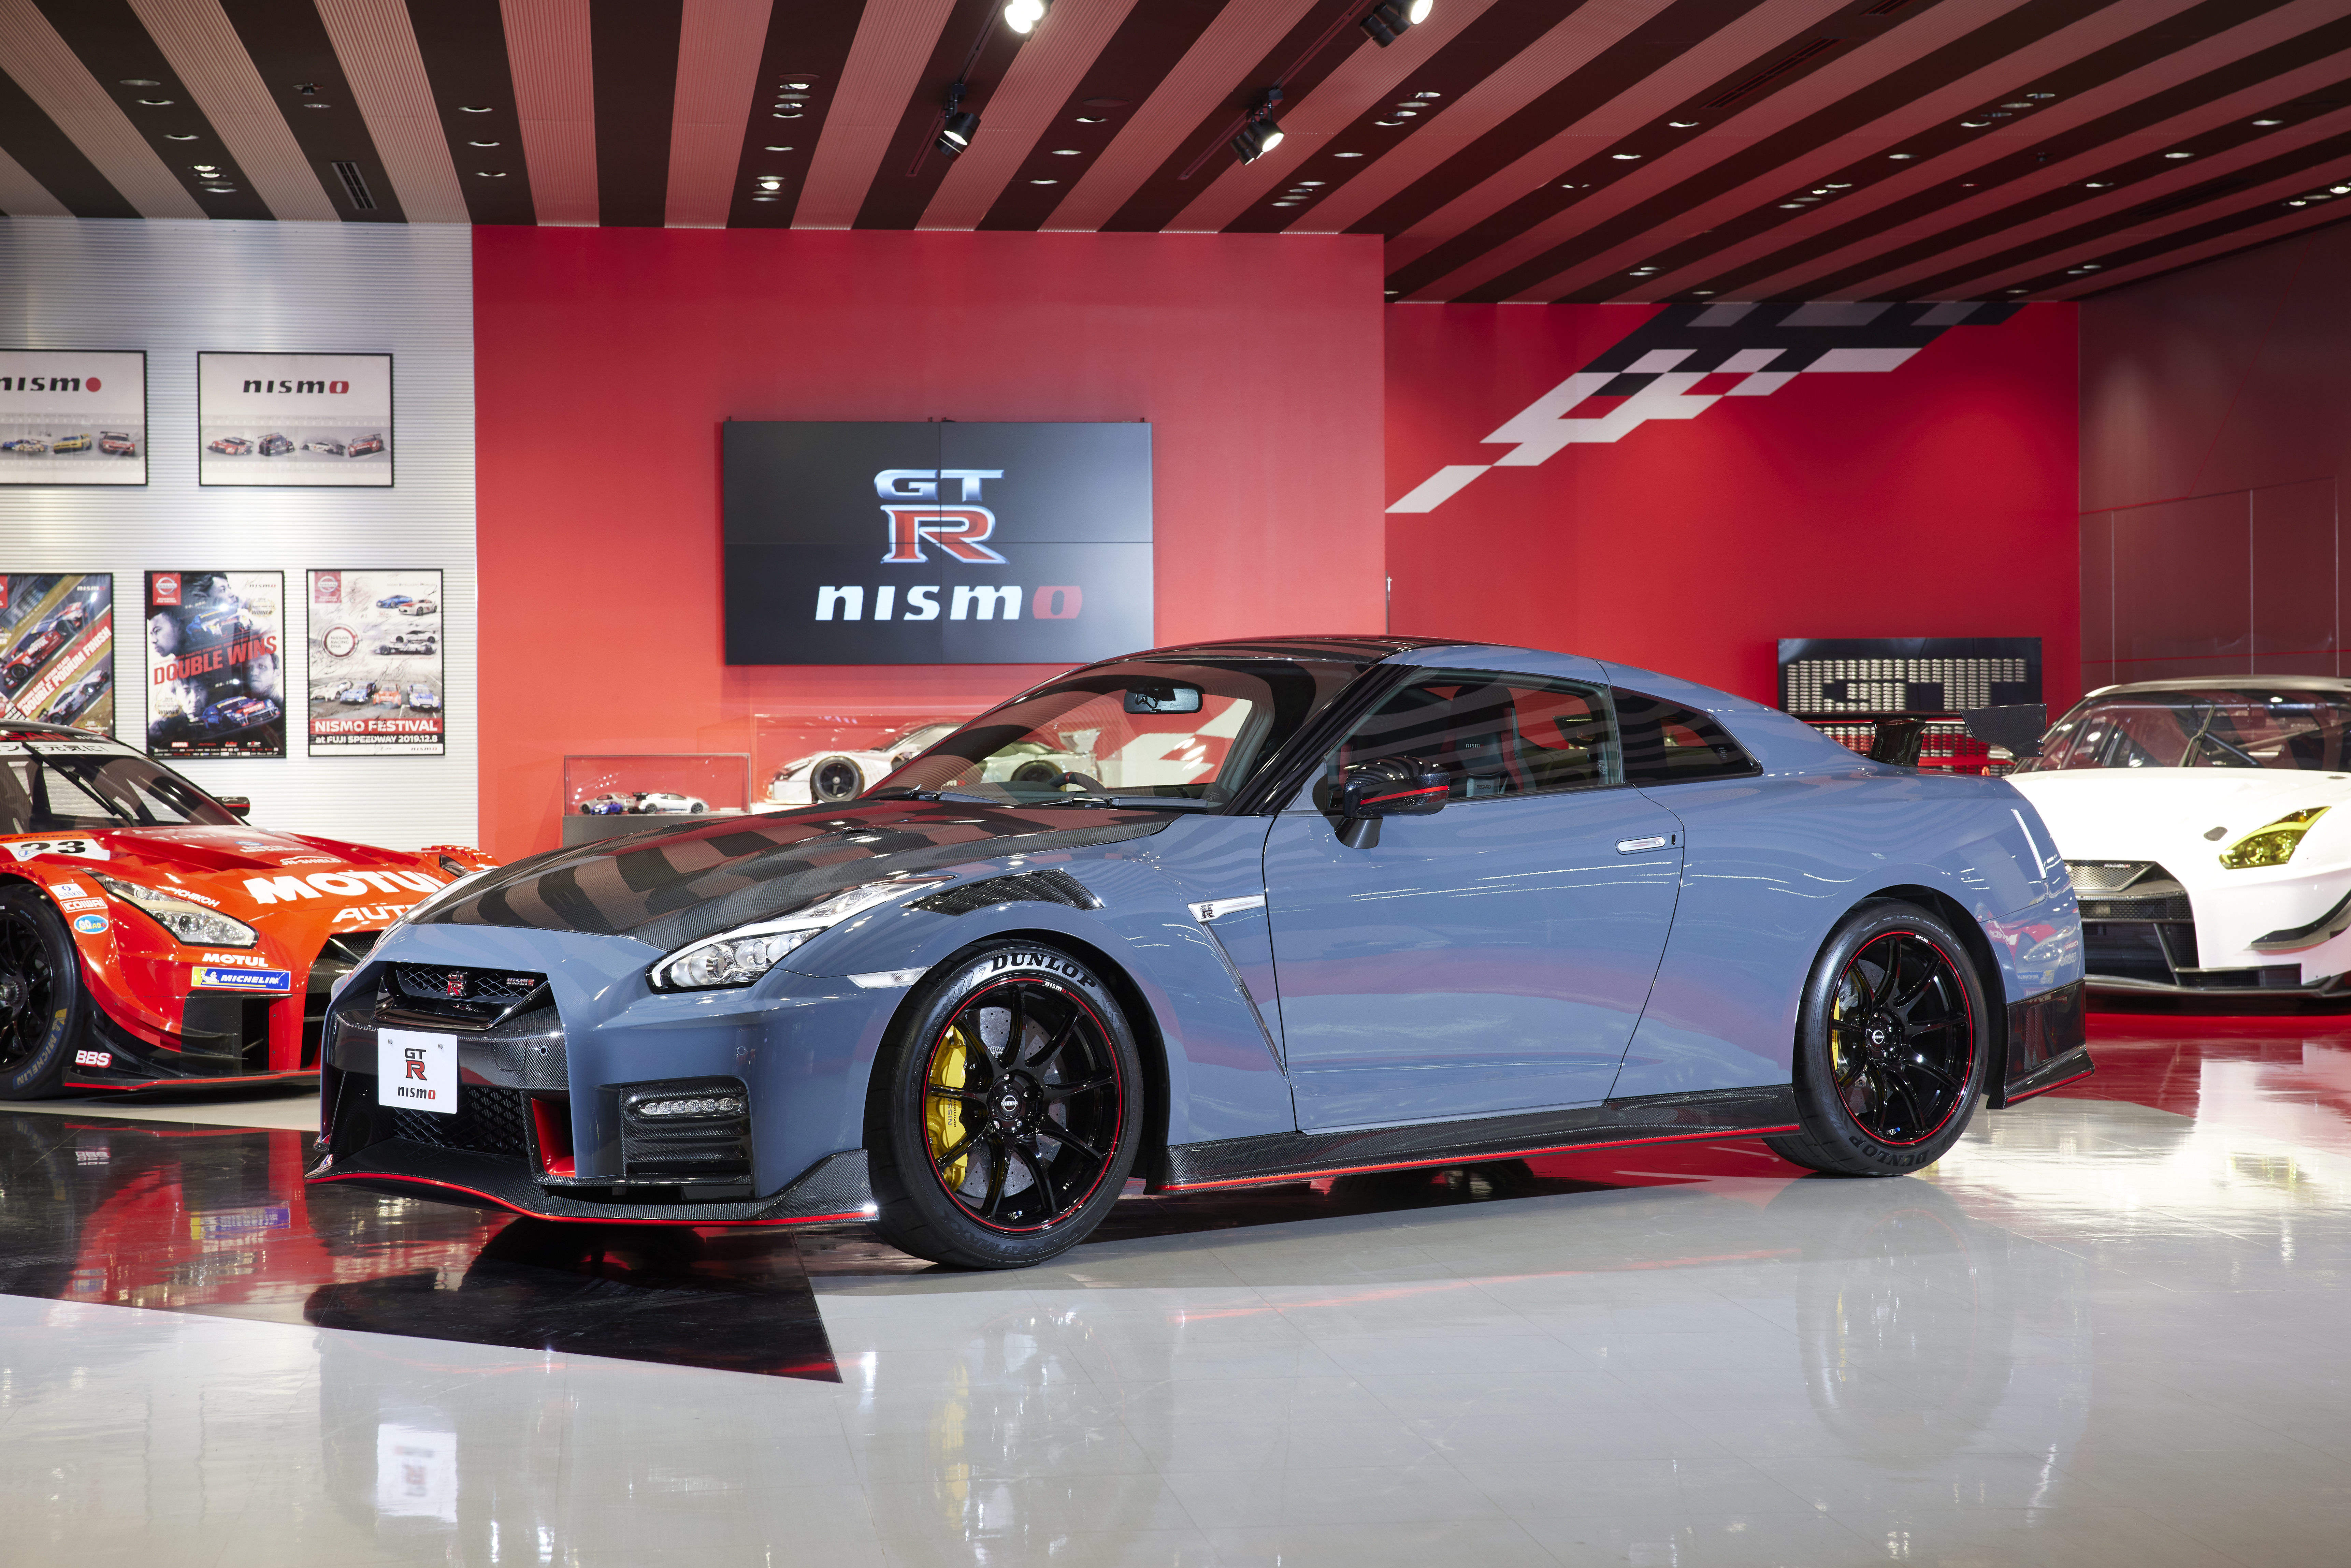 The built-to-order GT-R NISMO special edition utilizes new high-precision, weight-balanced parts